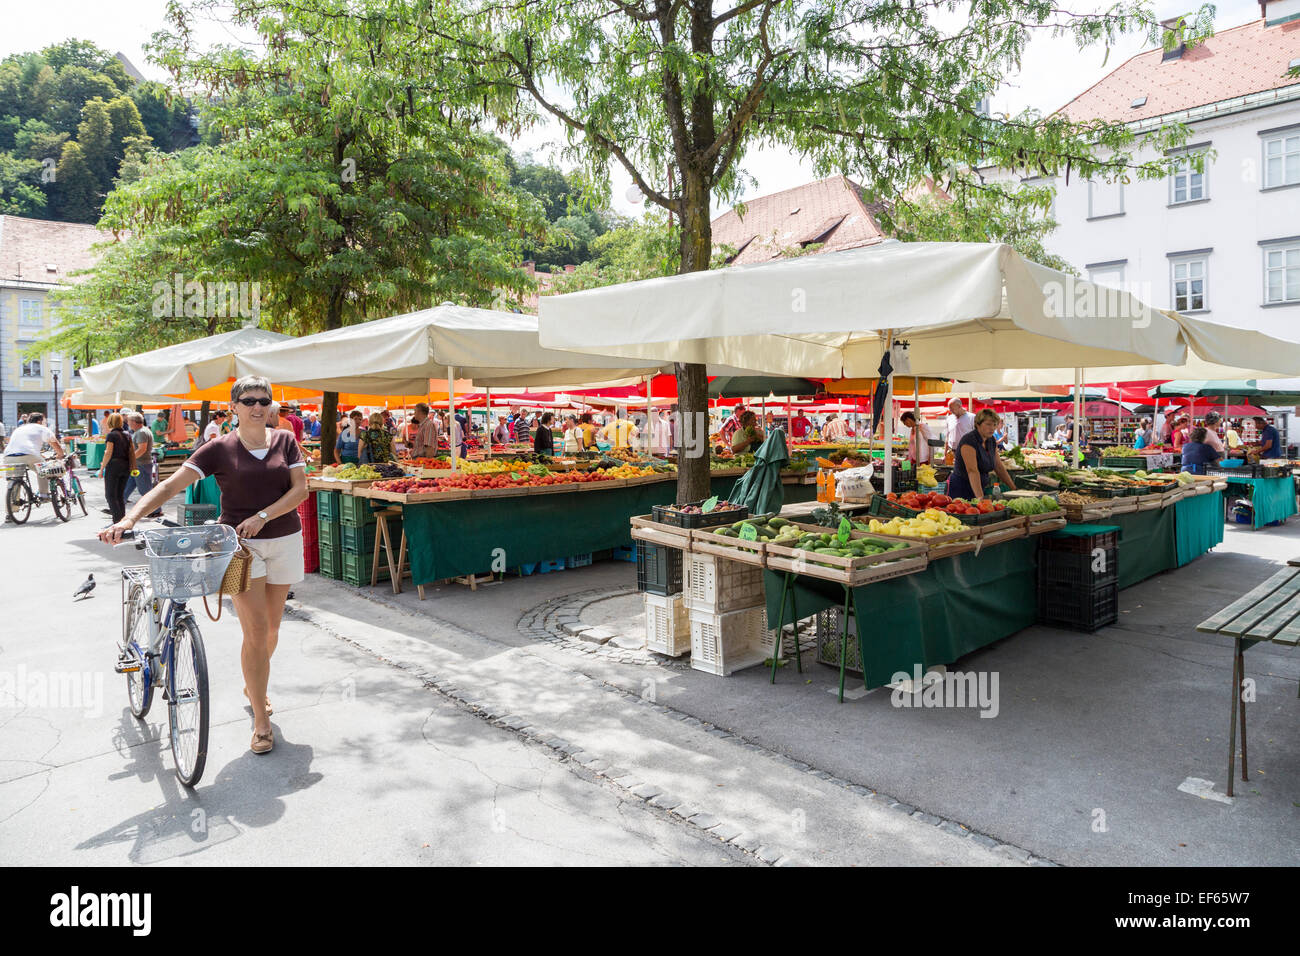 Open air sunday market, Ljubljana, Slovenia - Stock Image